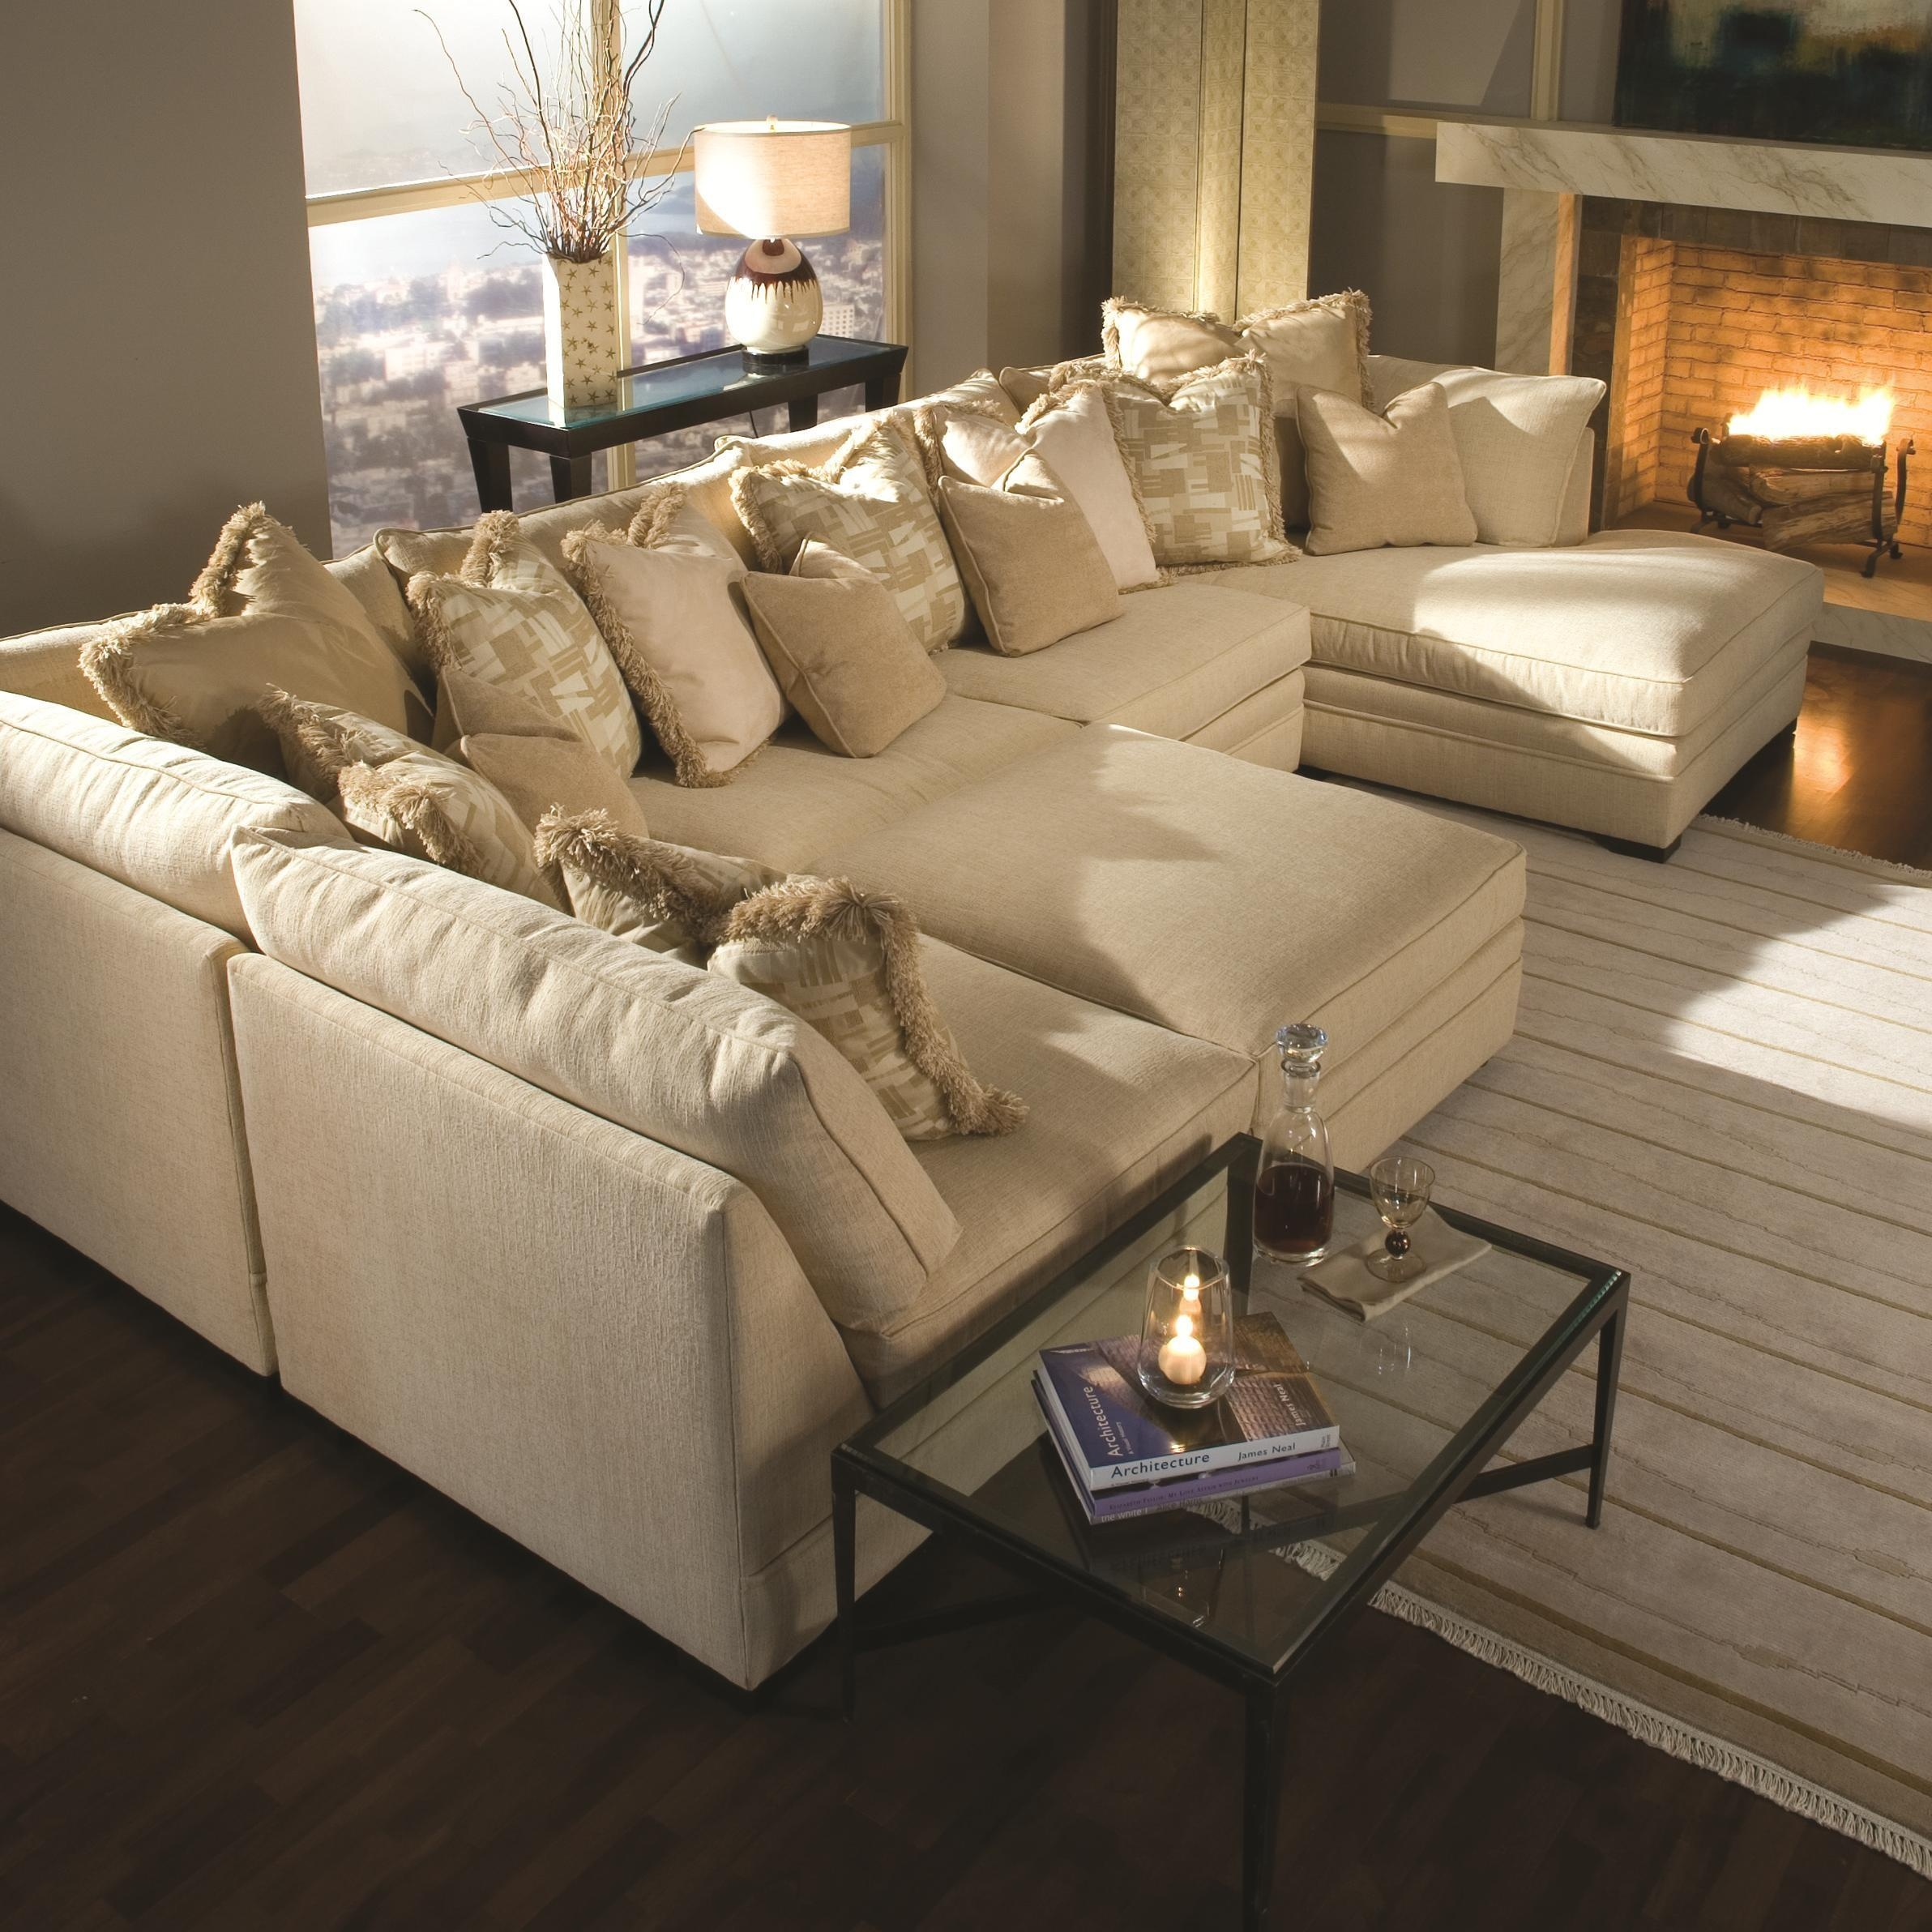 Interior: Admirable Oversized Sectional Sofas With Oversized In Oversized Sectional Sofa (View 15 of 20)